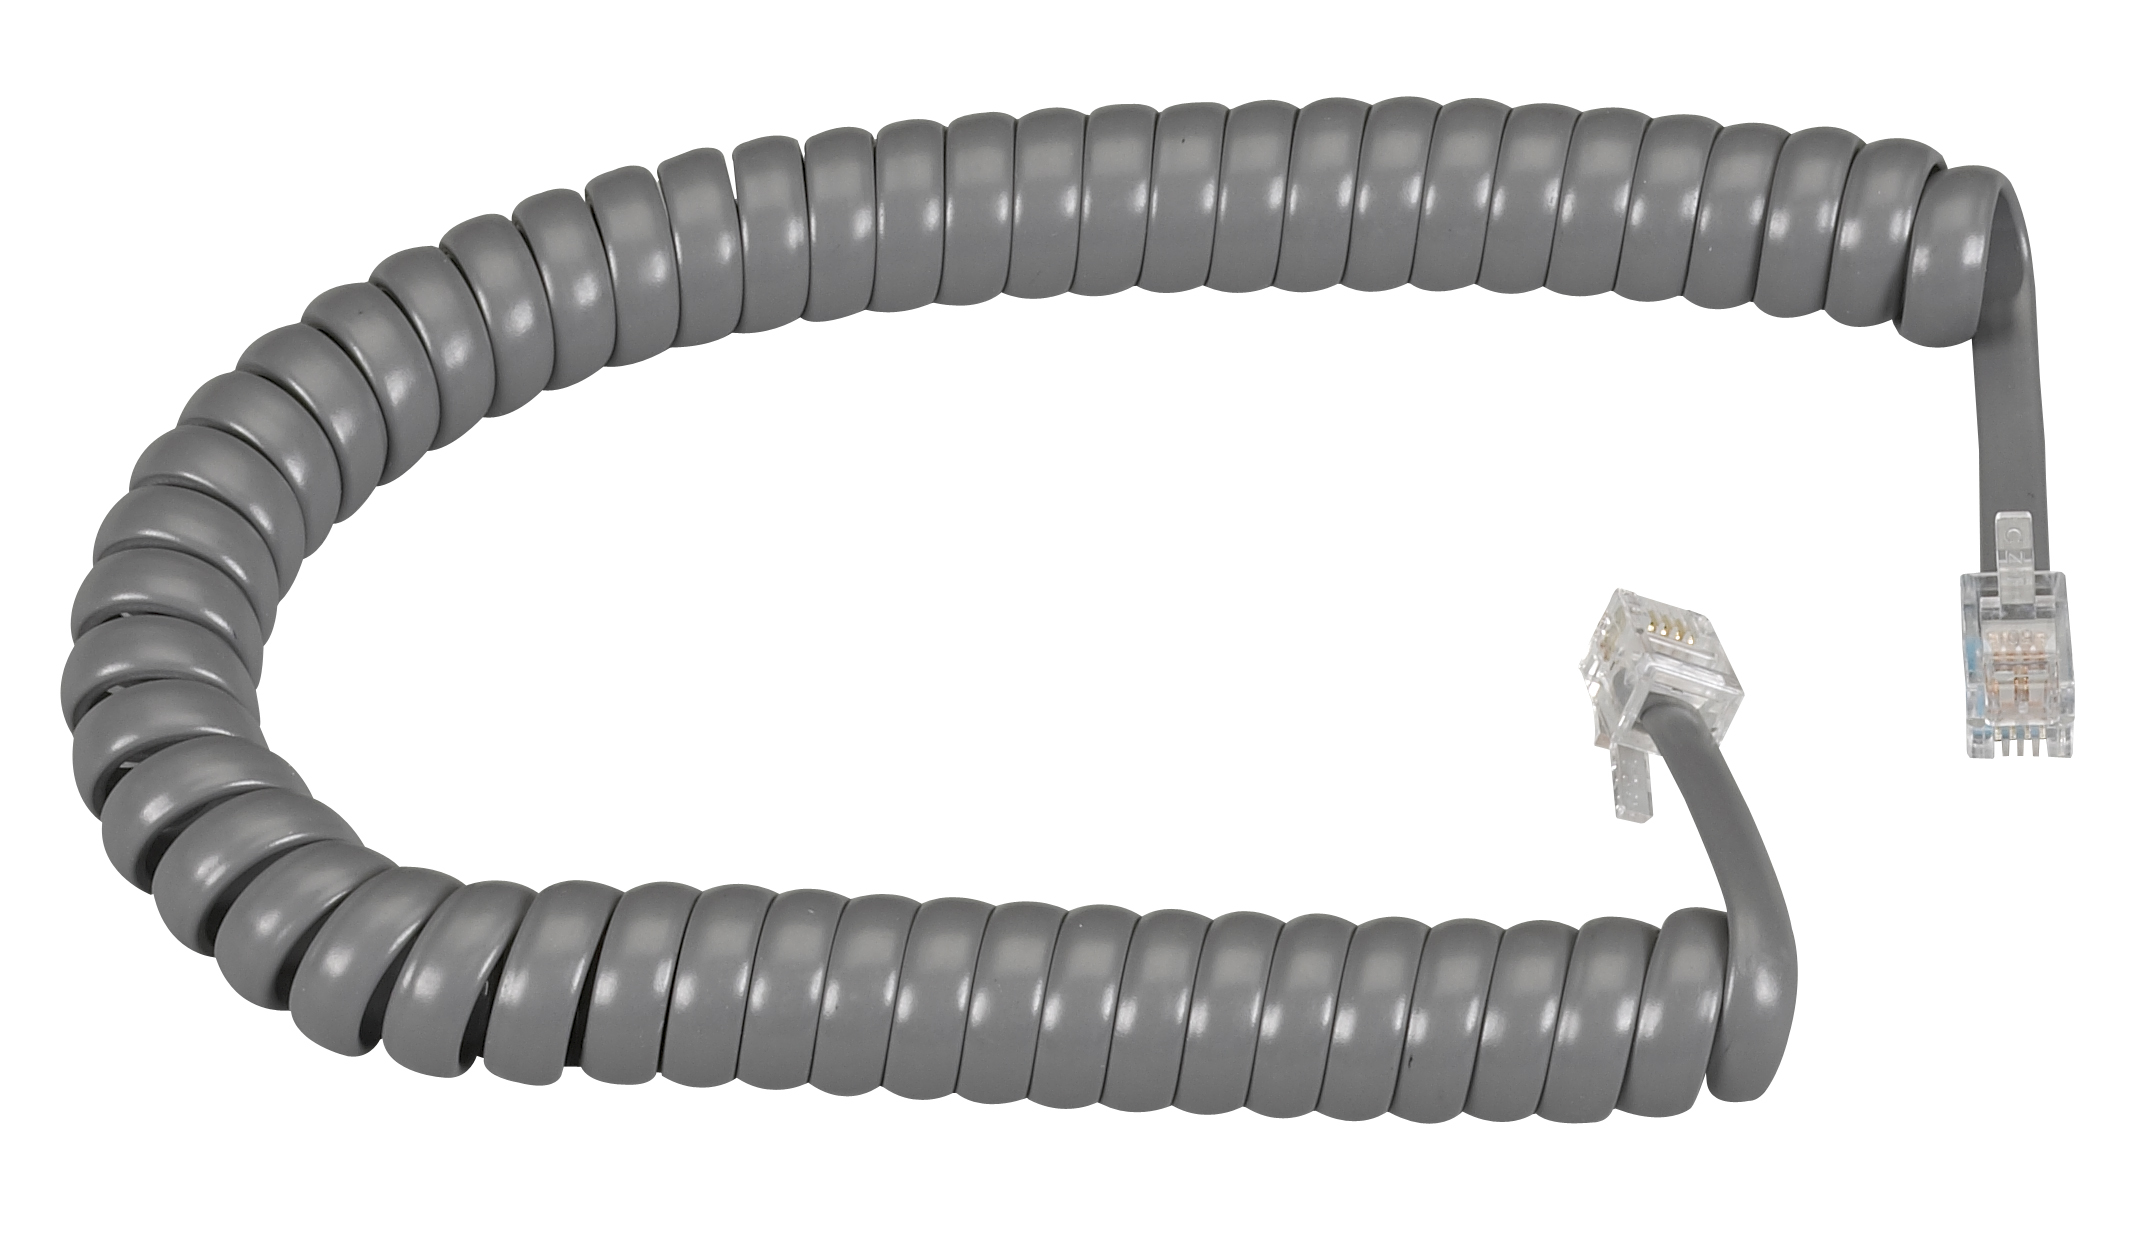 Coiled Telephone Cords - Best Pictures Of Coil Imagesfx.Org